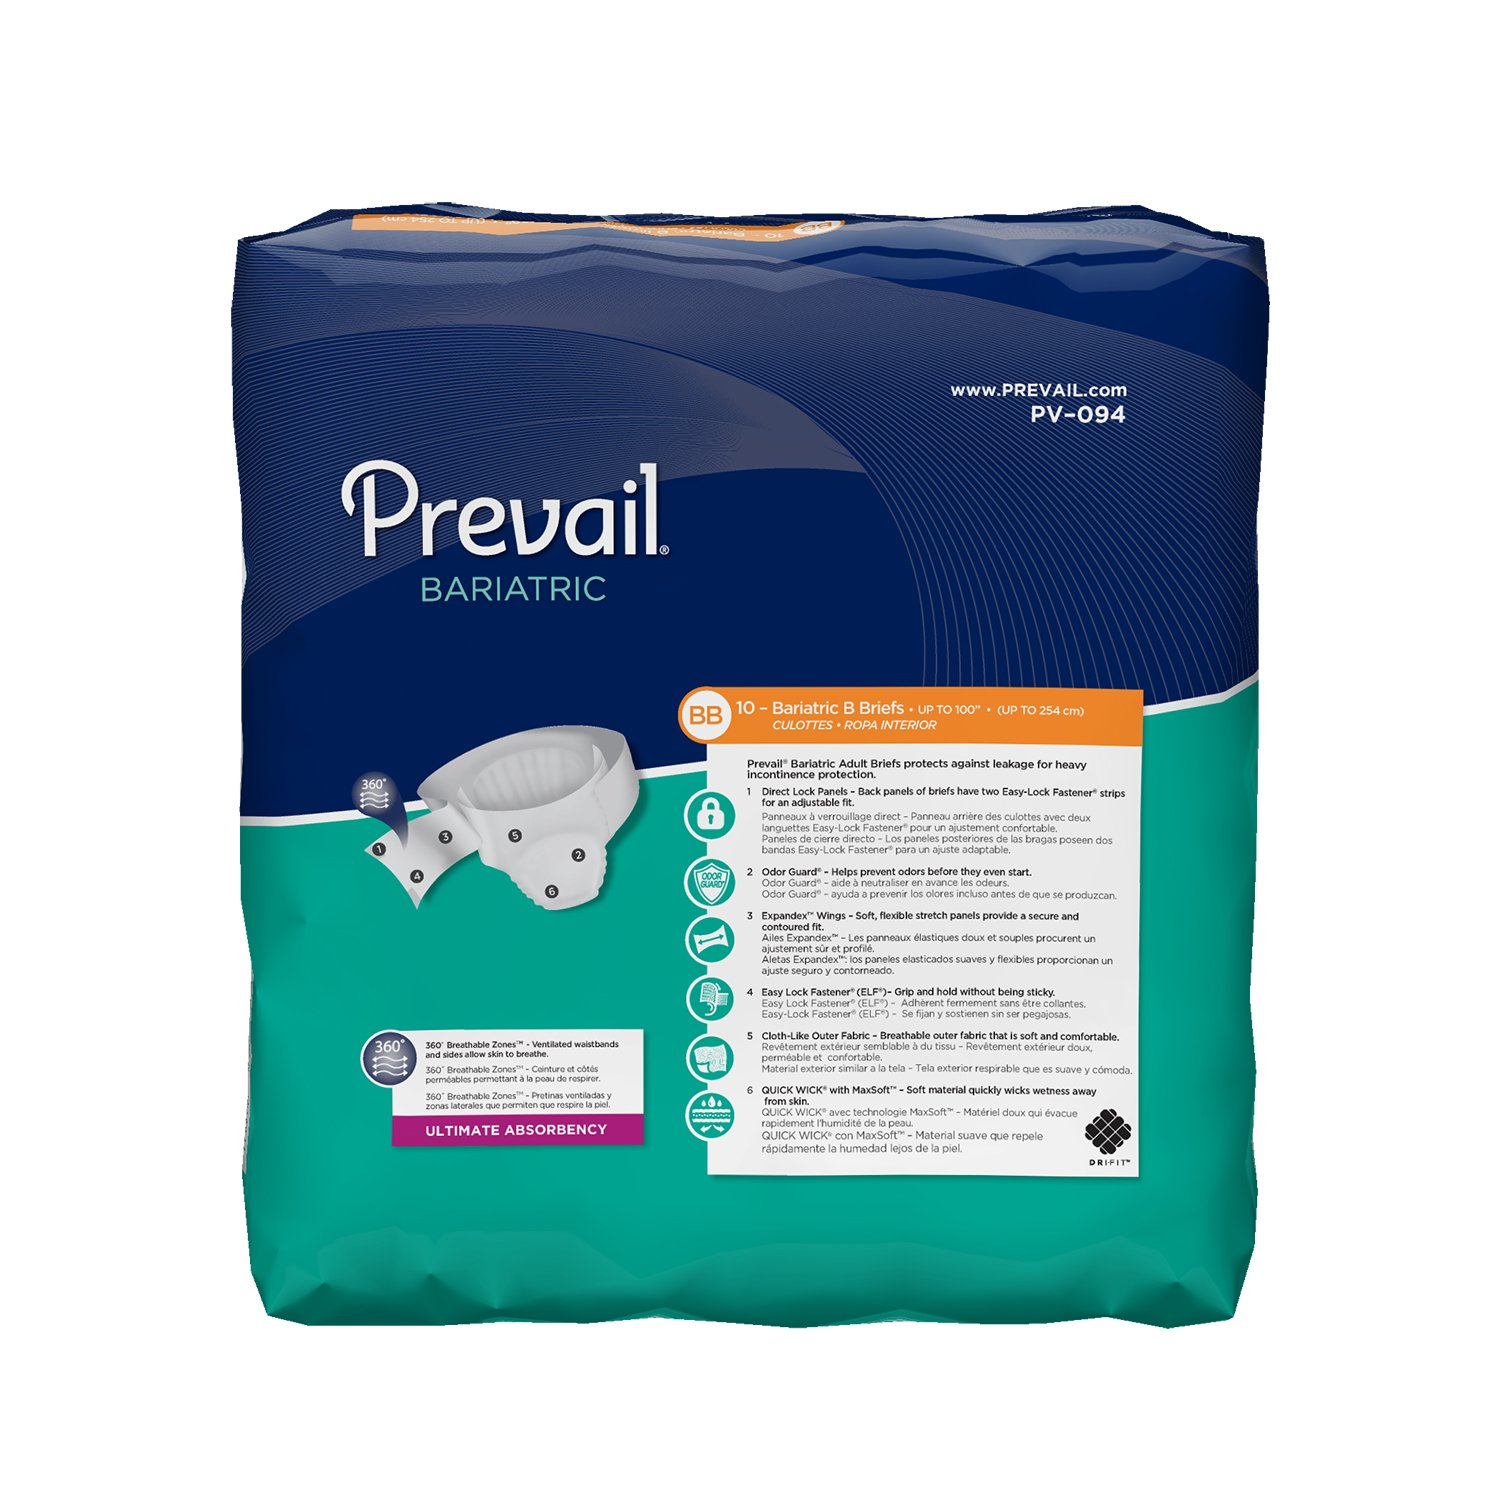 Amazon.com: Prevail Bariatric Ultimate Absorbency Briefs, Size B, 10-Count: Health & Personal Care